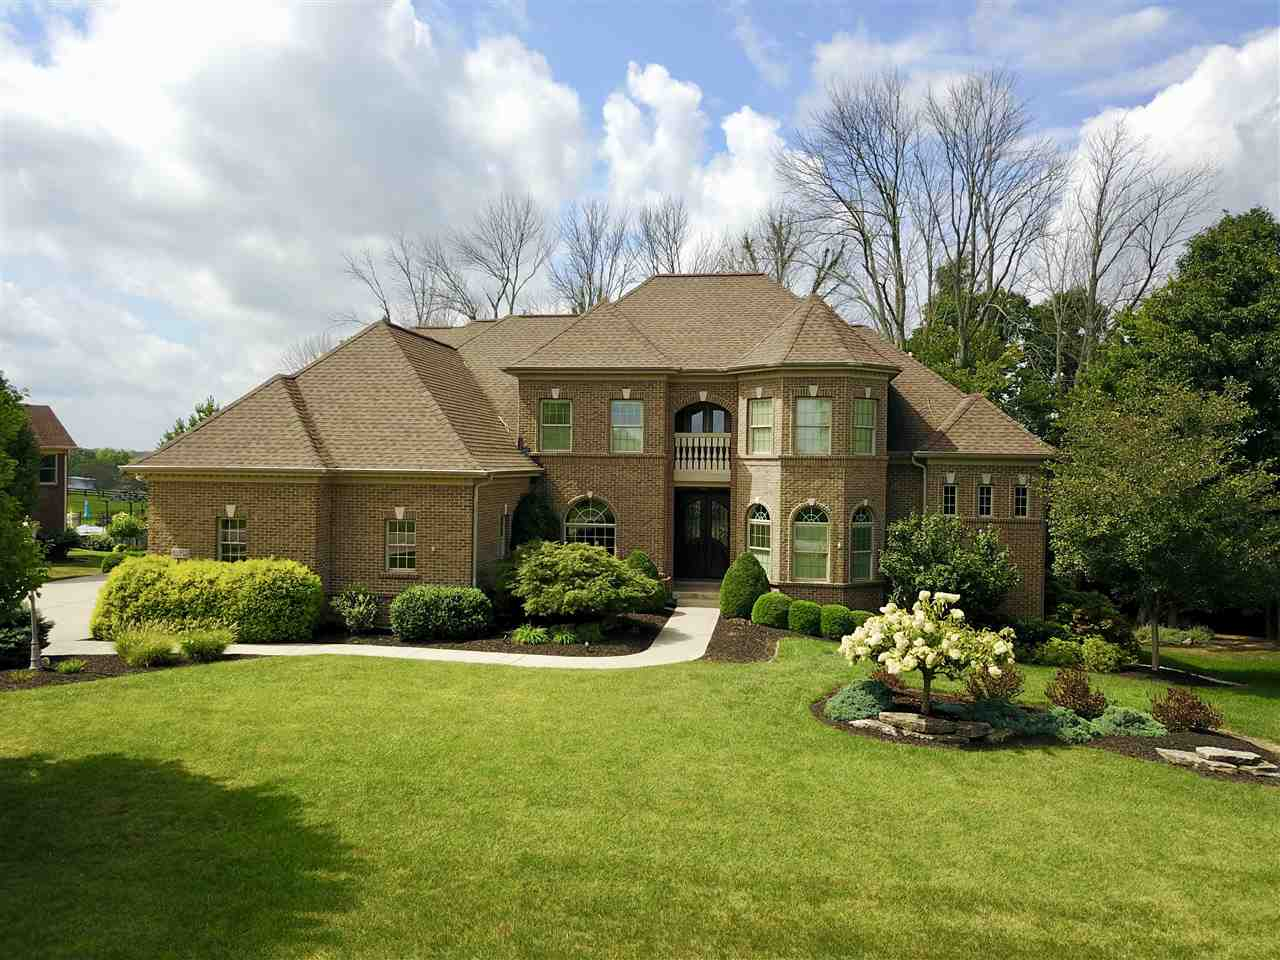 3239 Ballantree Way Verona, KY